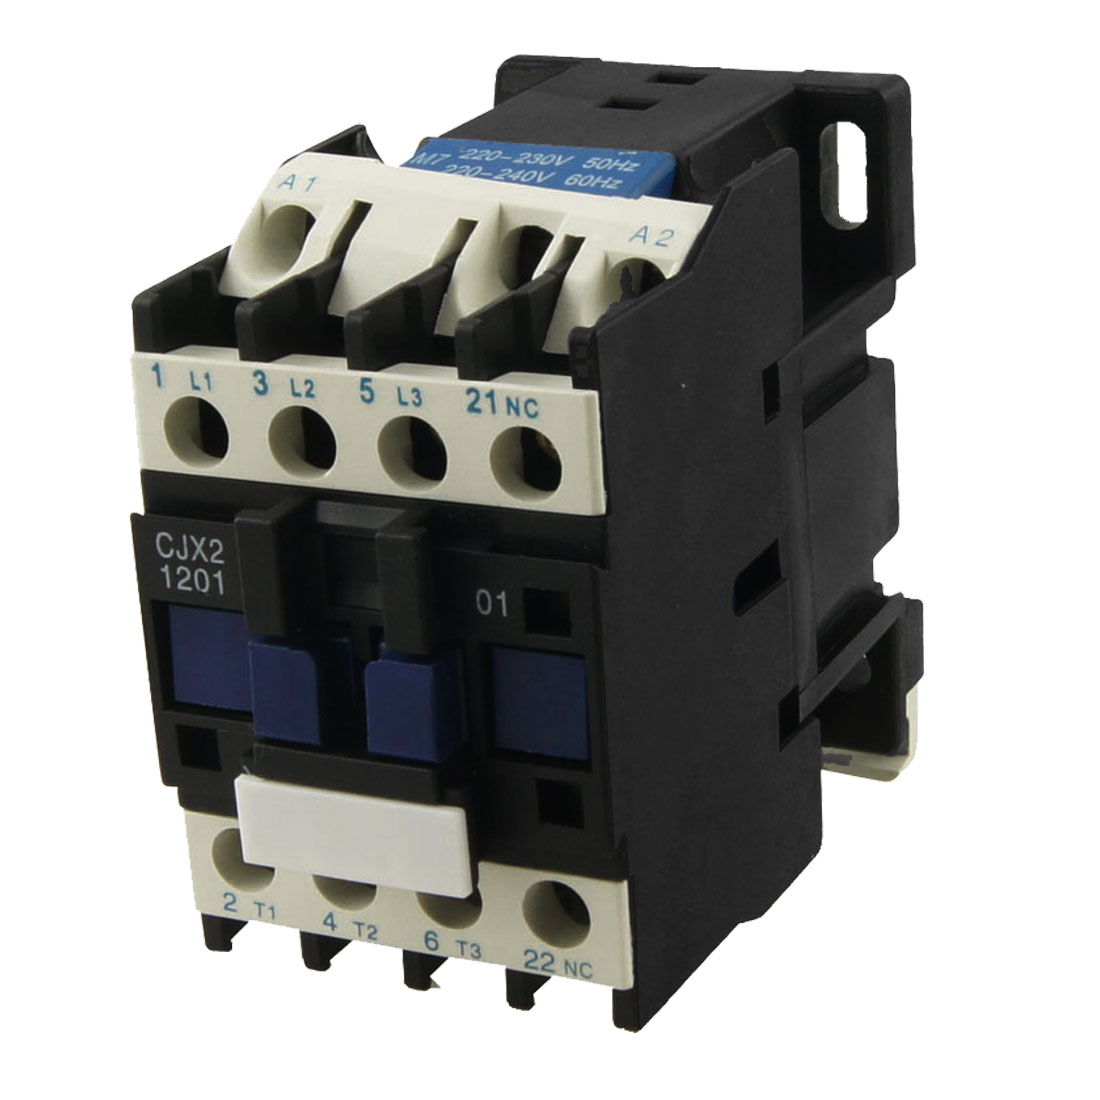 CJX2-1201 DIN Rail Mount AC Contactor 3 Pole One NC 220V Coil 12A